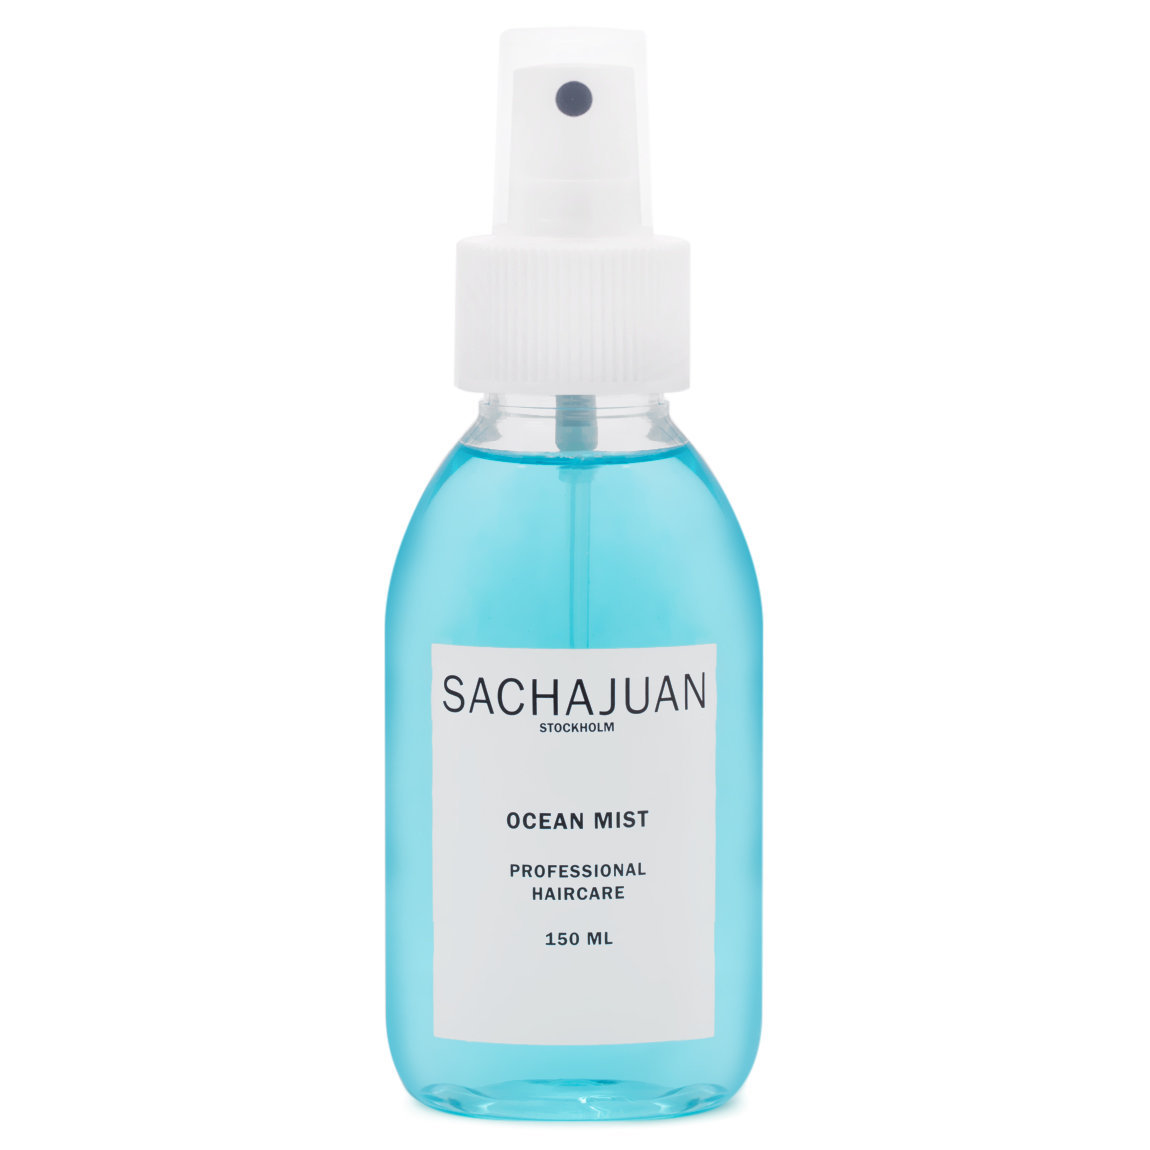 SACHAJUAN Ocean Mist 150 ml product swatch.